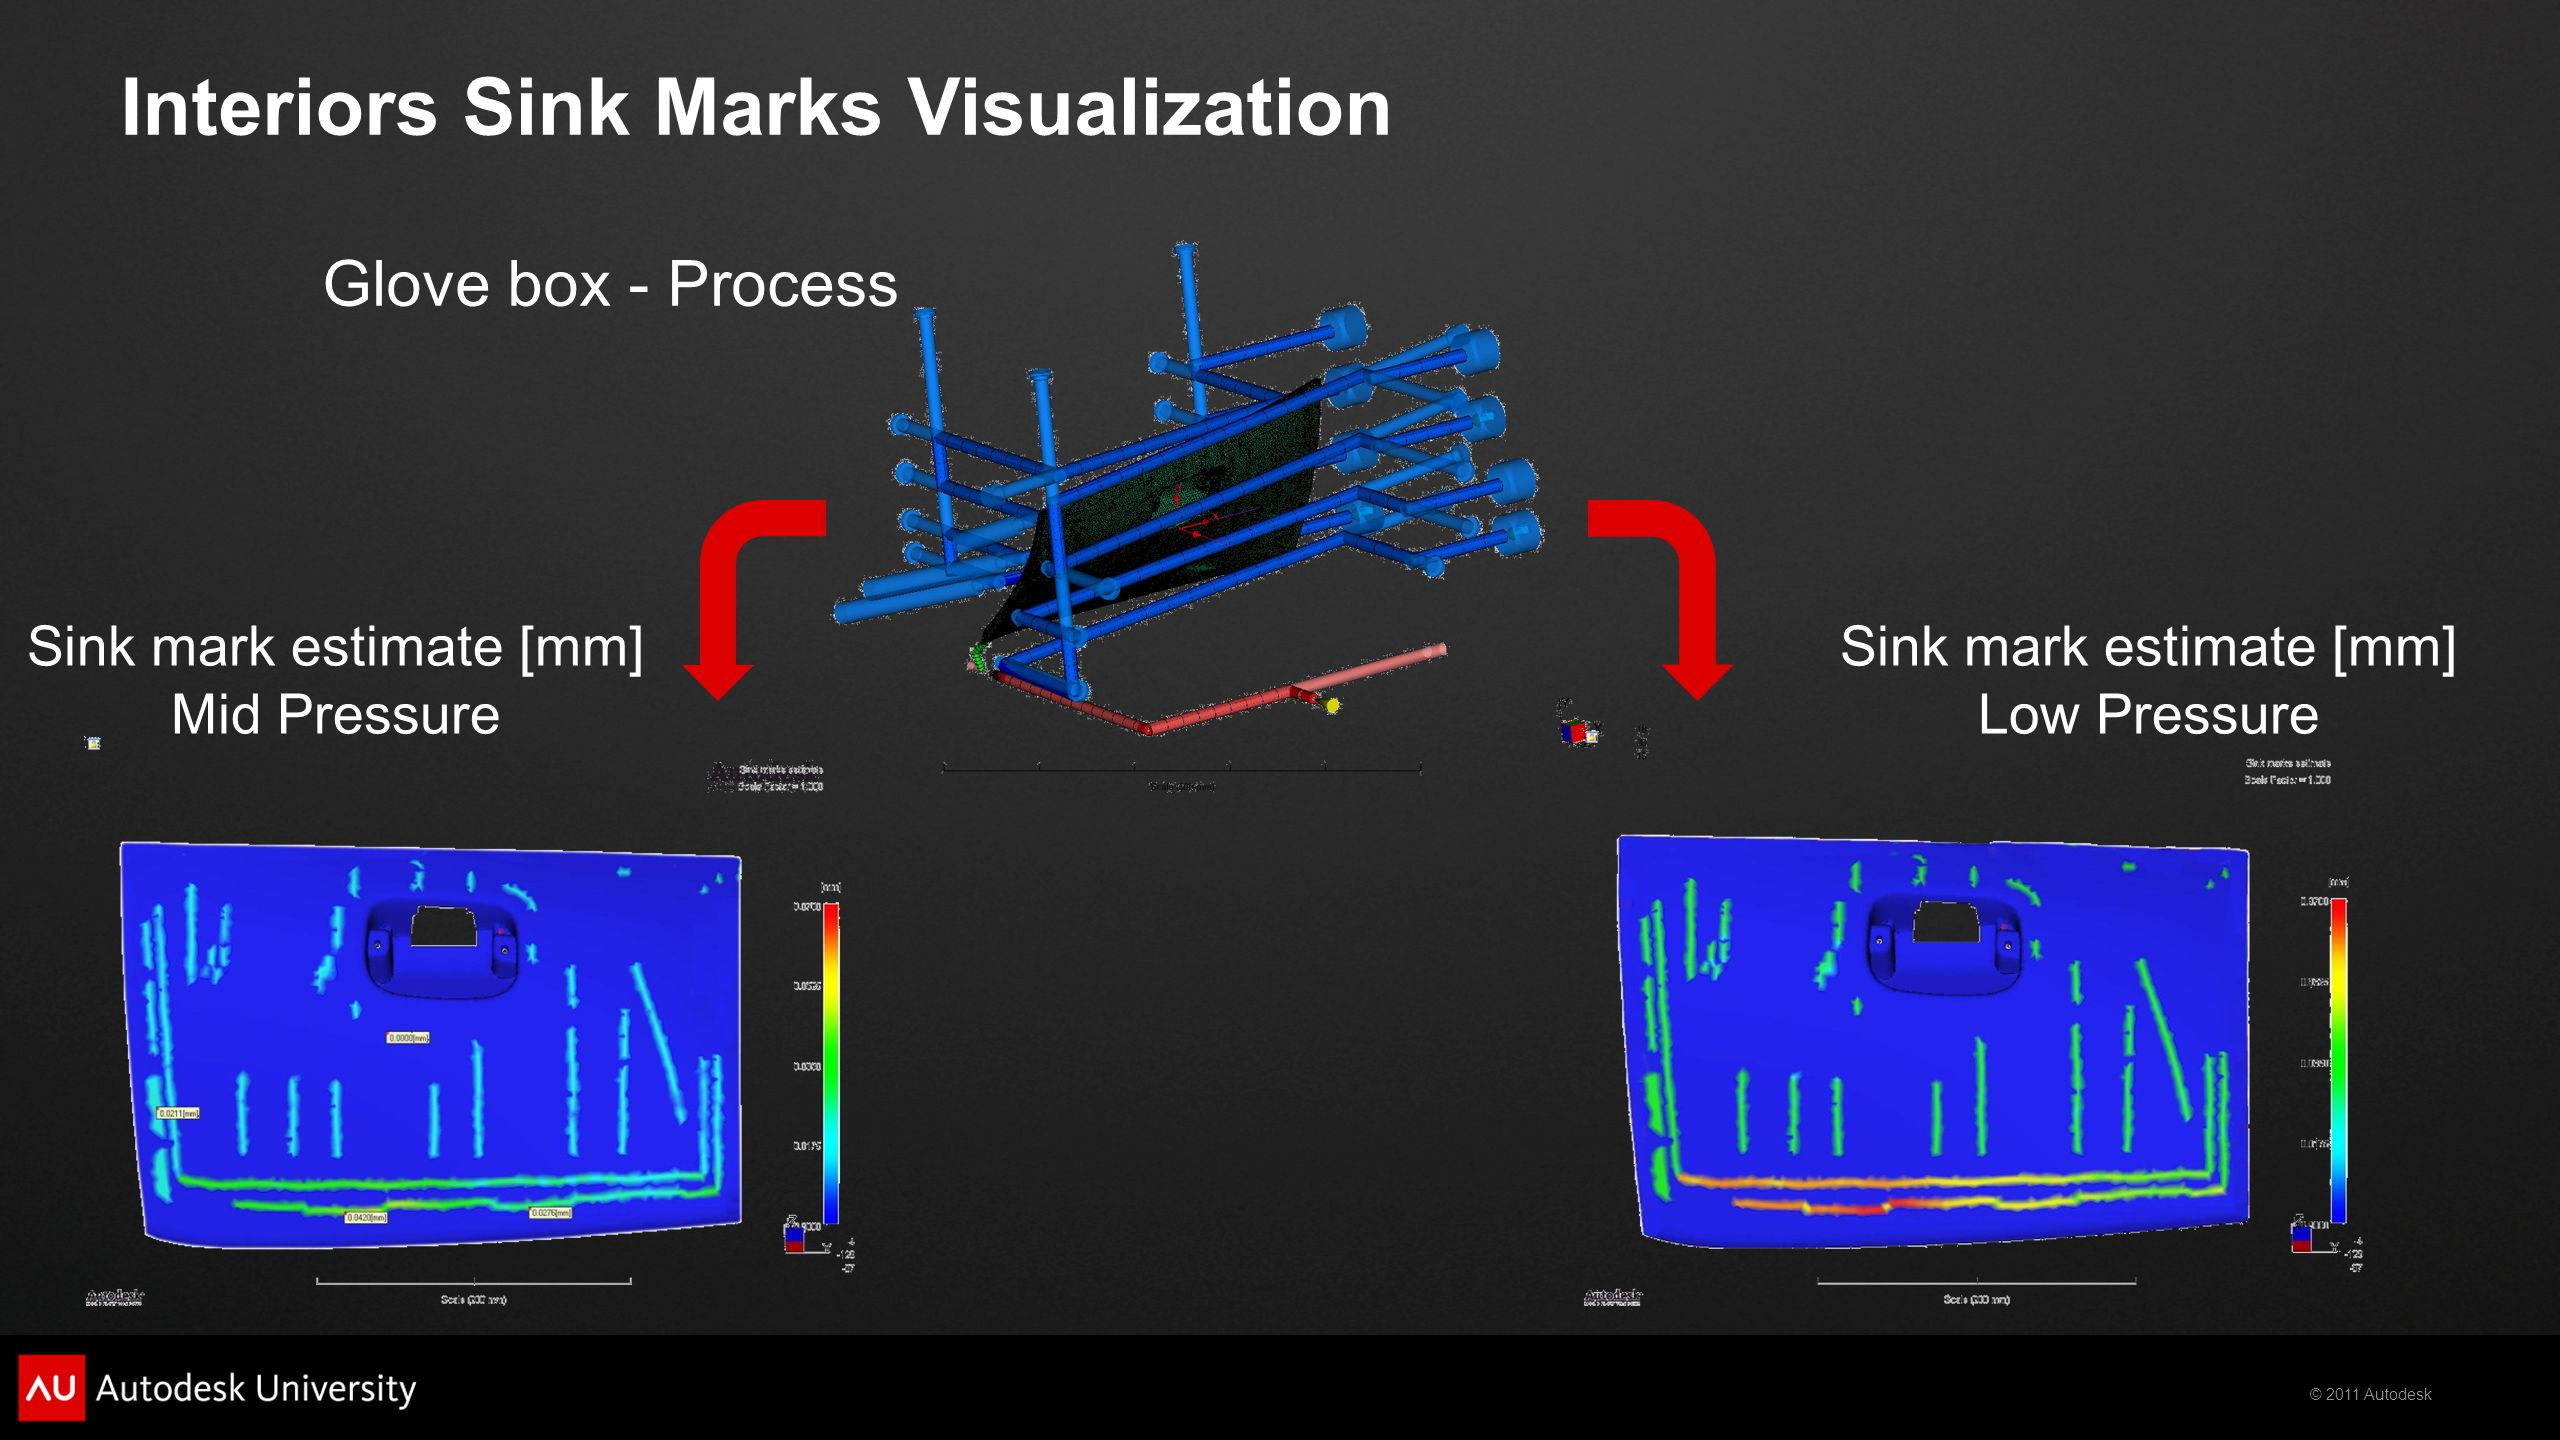 © 2011 Autodesk Glove box - Process Sink mark estimate [mm] Mid Pressure Sink mark estimate [mm] Low Pressure Interiors Sink Marks Visualization